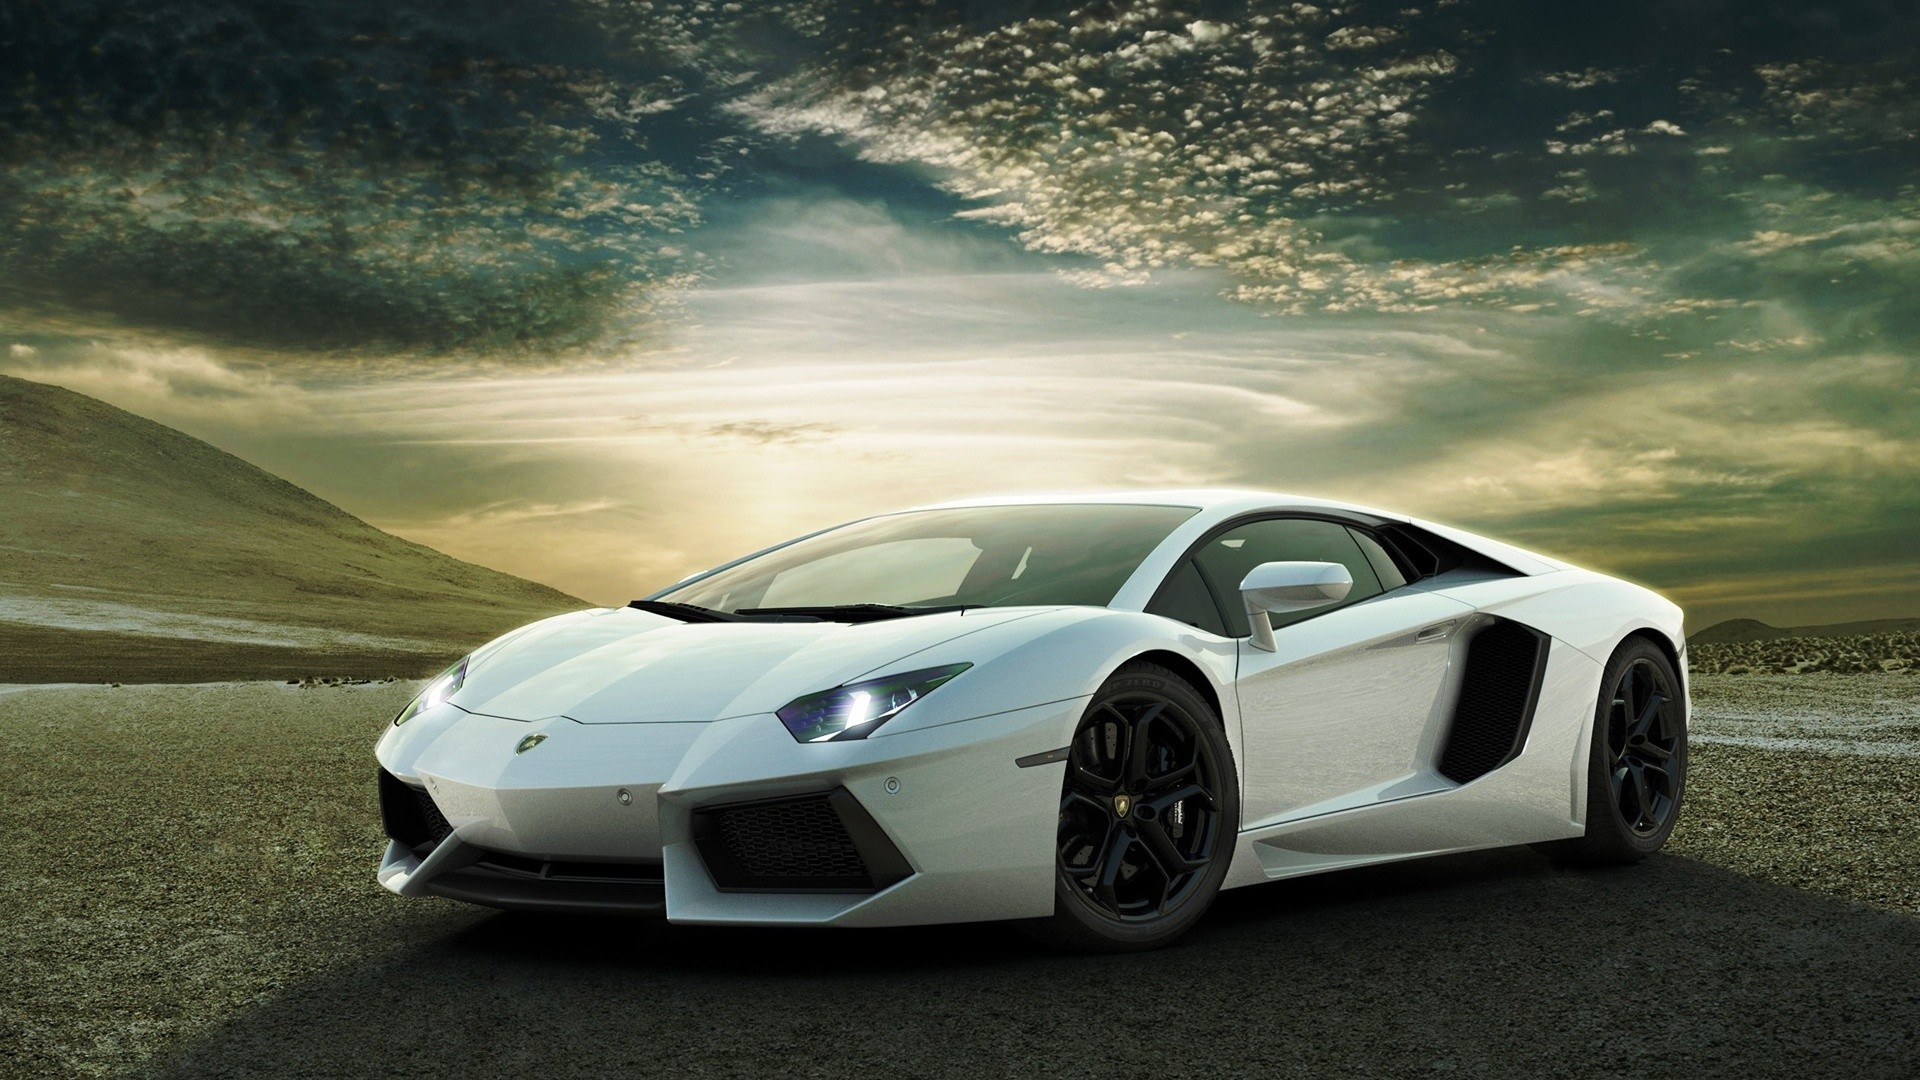 1920x1080 ... cars wallpaper lamborghini aventador Wallpapers Lamborghini Aventador  Hd - Auto Datz ...